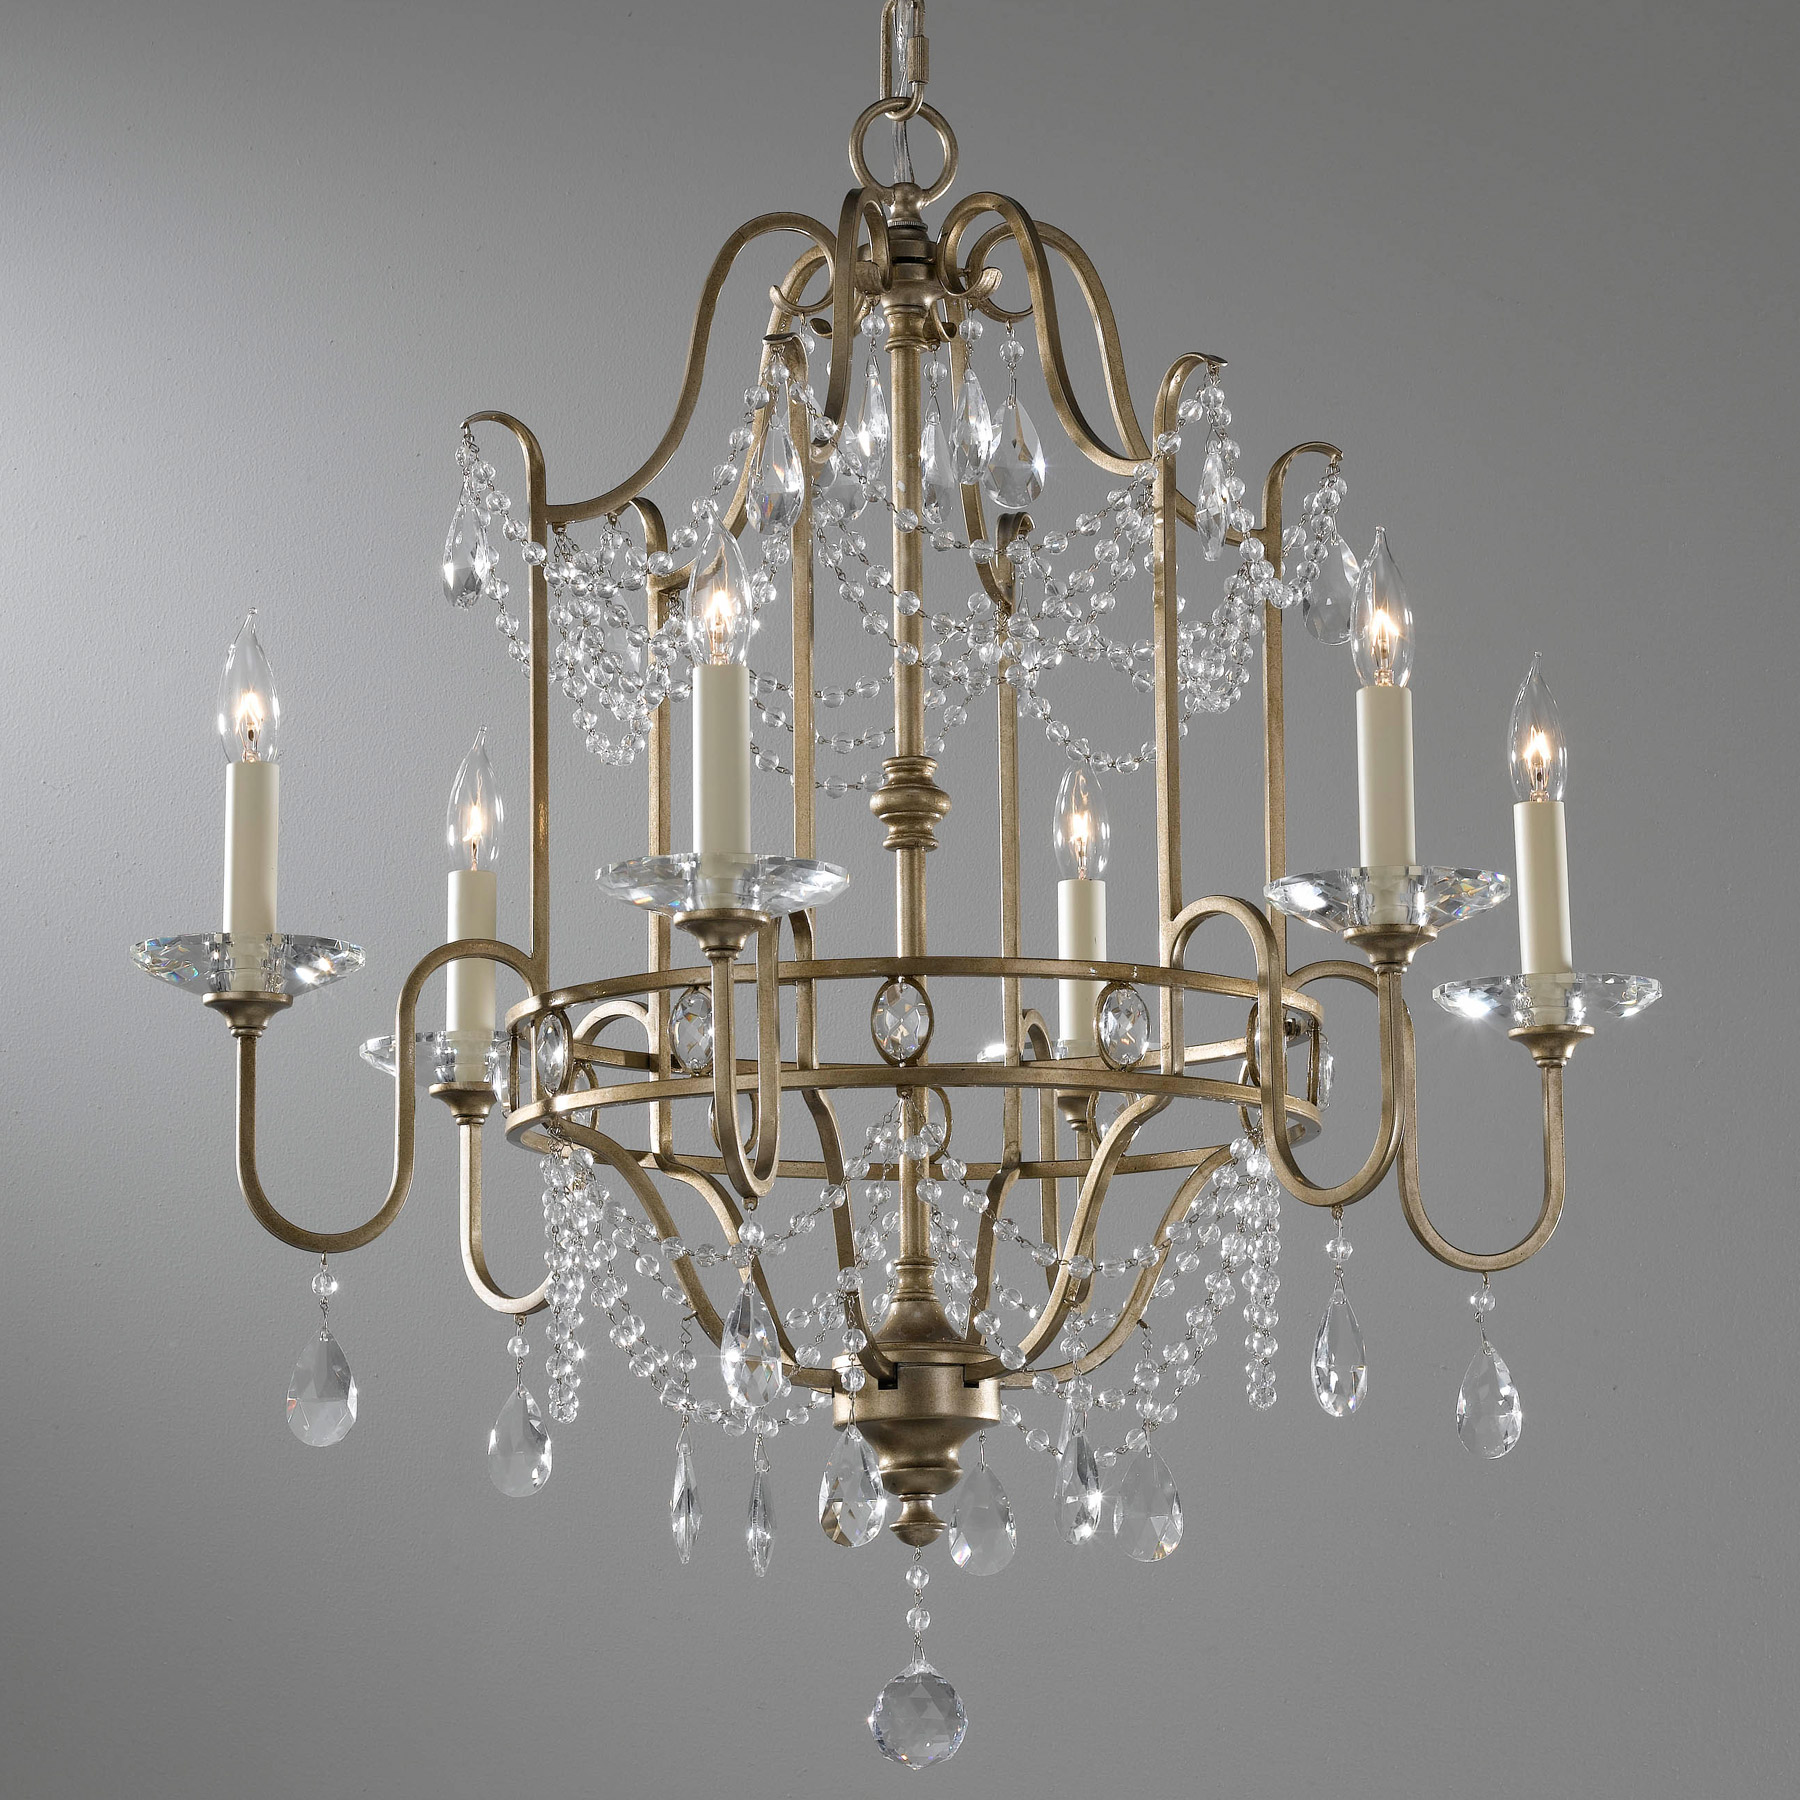 Murray Feiss F2475 6gs Crystal Gianna Six Light Chandelier